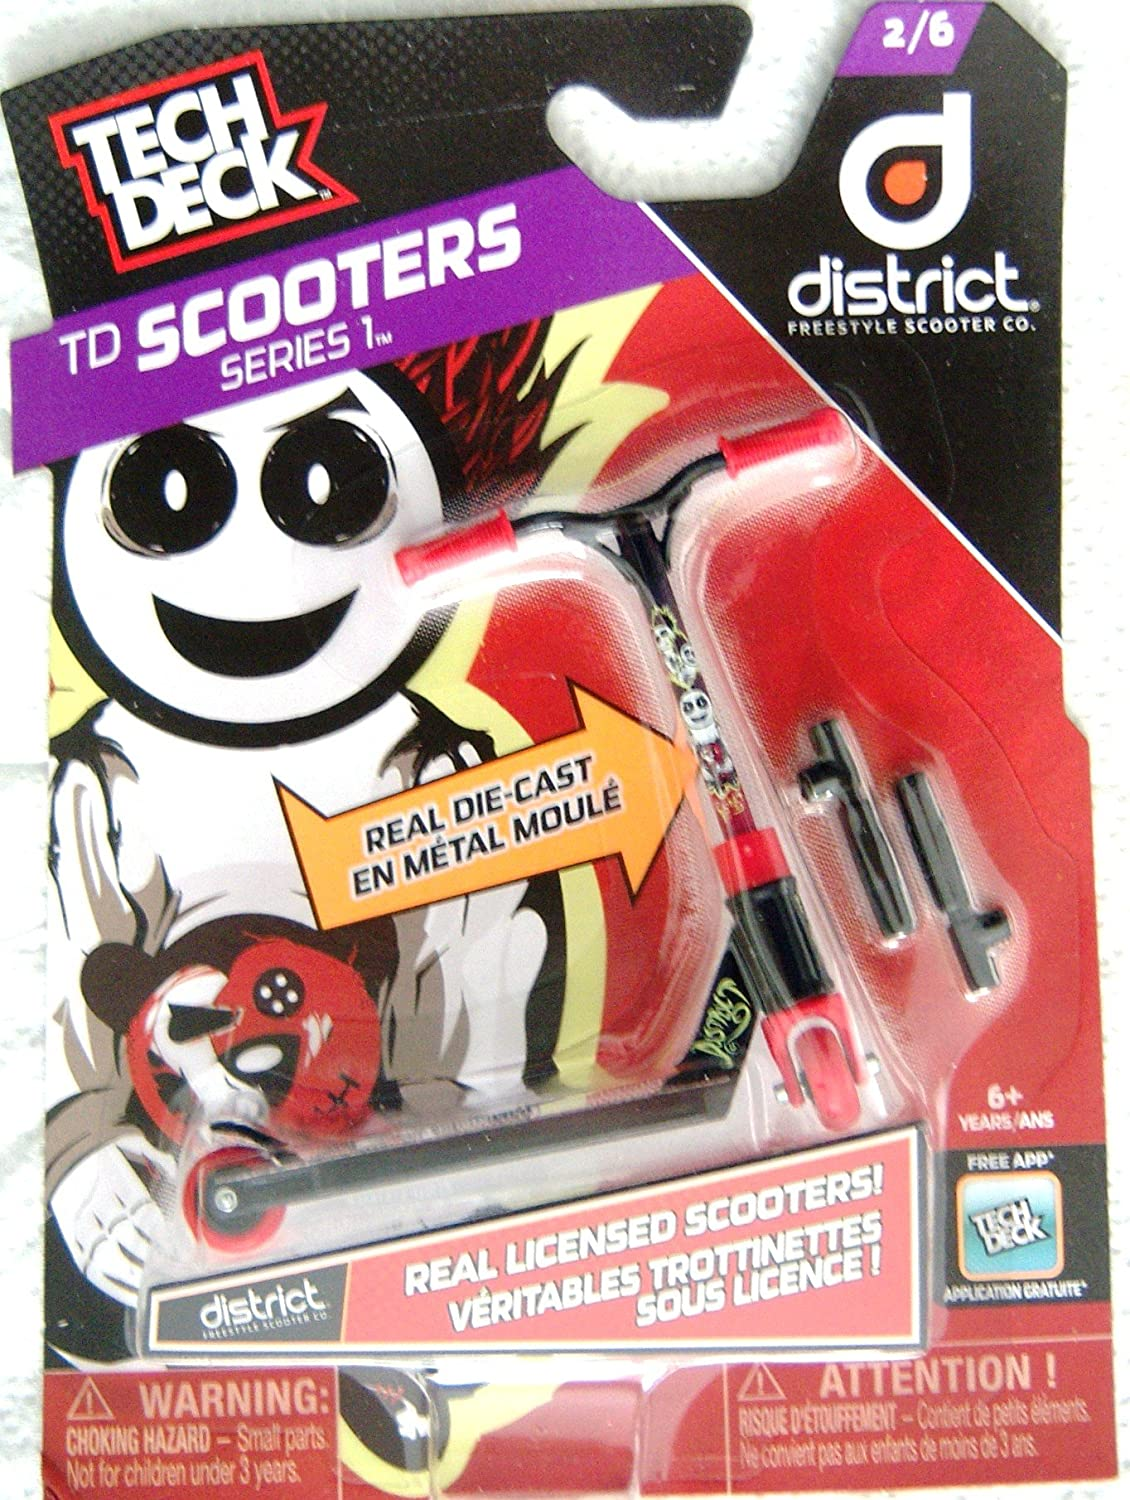 Amazon Com Tech Deck Scooters Series 1 District Freestyle Scooter Co 2 6 Toys Games